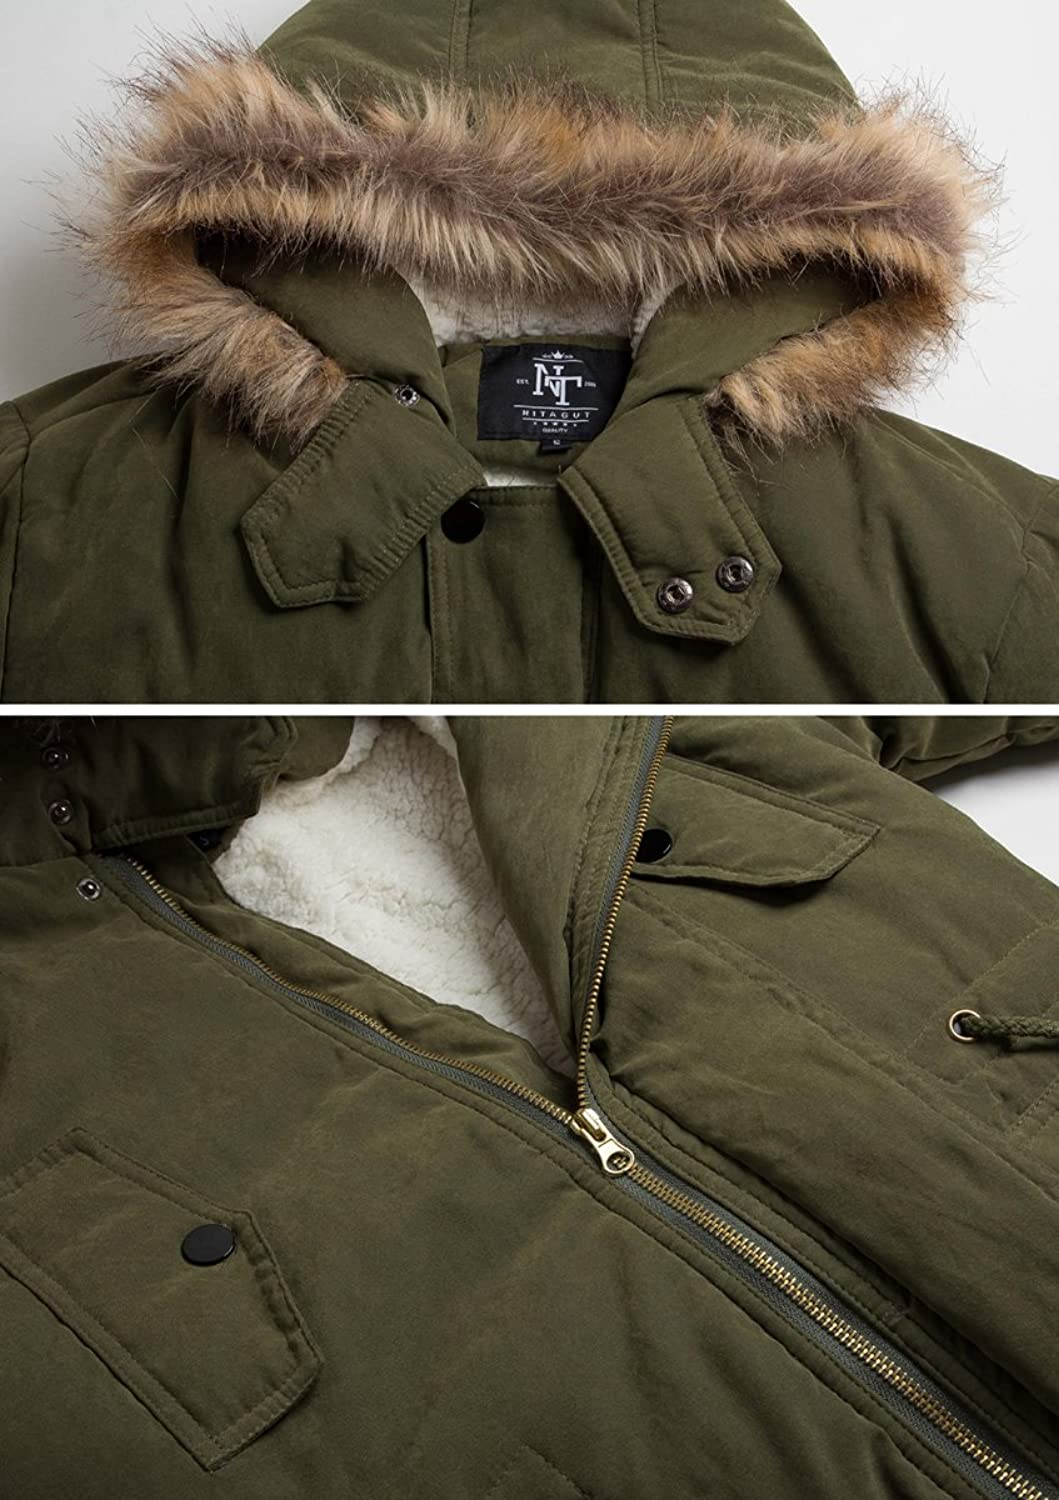 8ce1e4656953b NITAGUT Men s Hooded Faux Fur Lined Warm Coats Outwear Winter Jackets at  Amazon Men s Clothing store